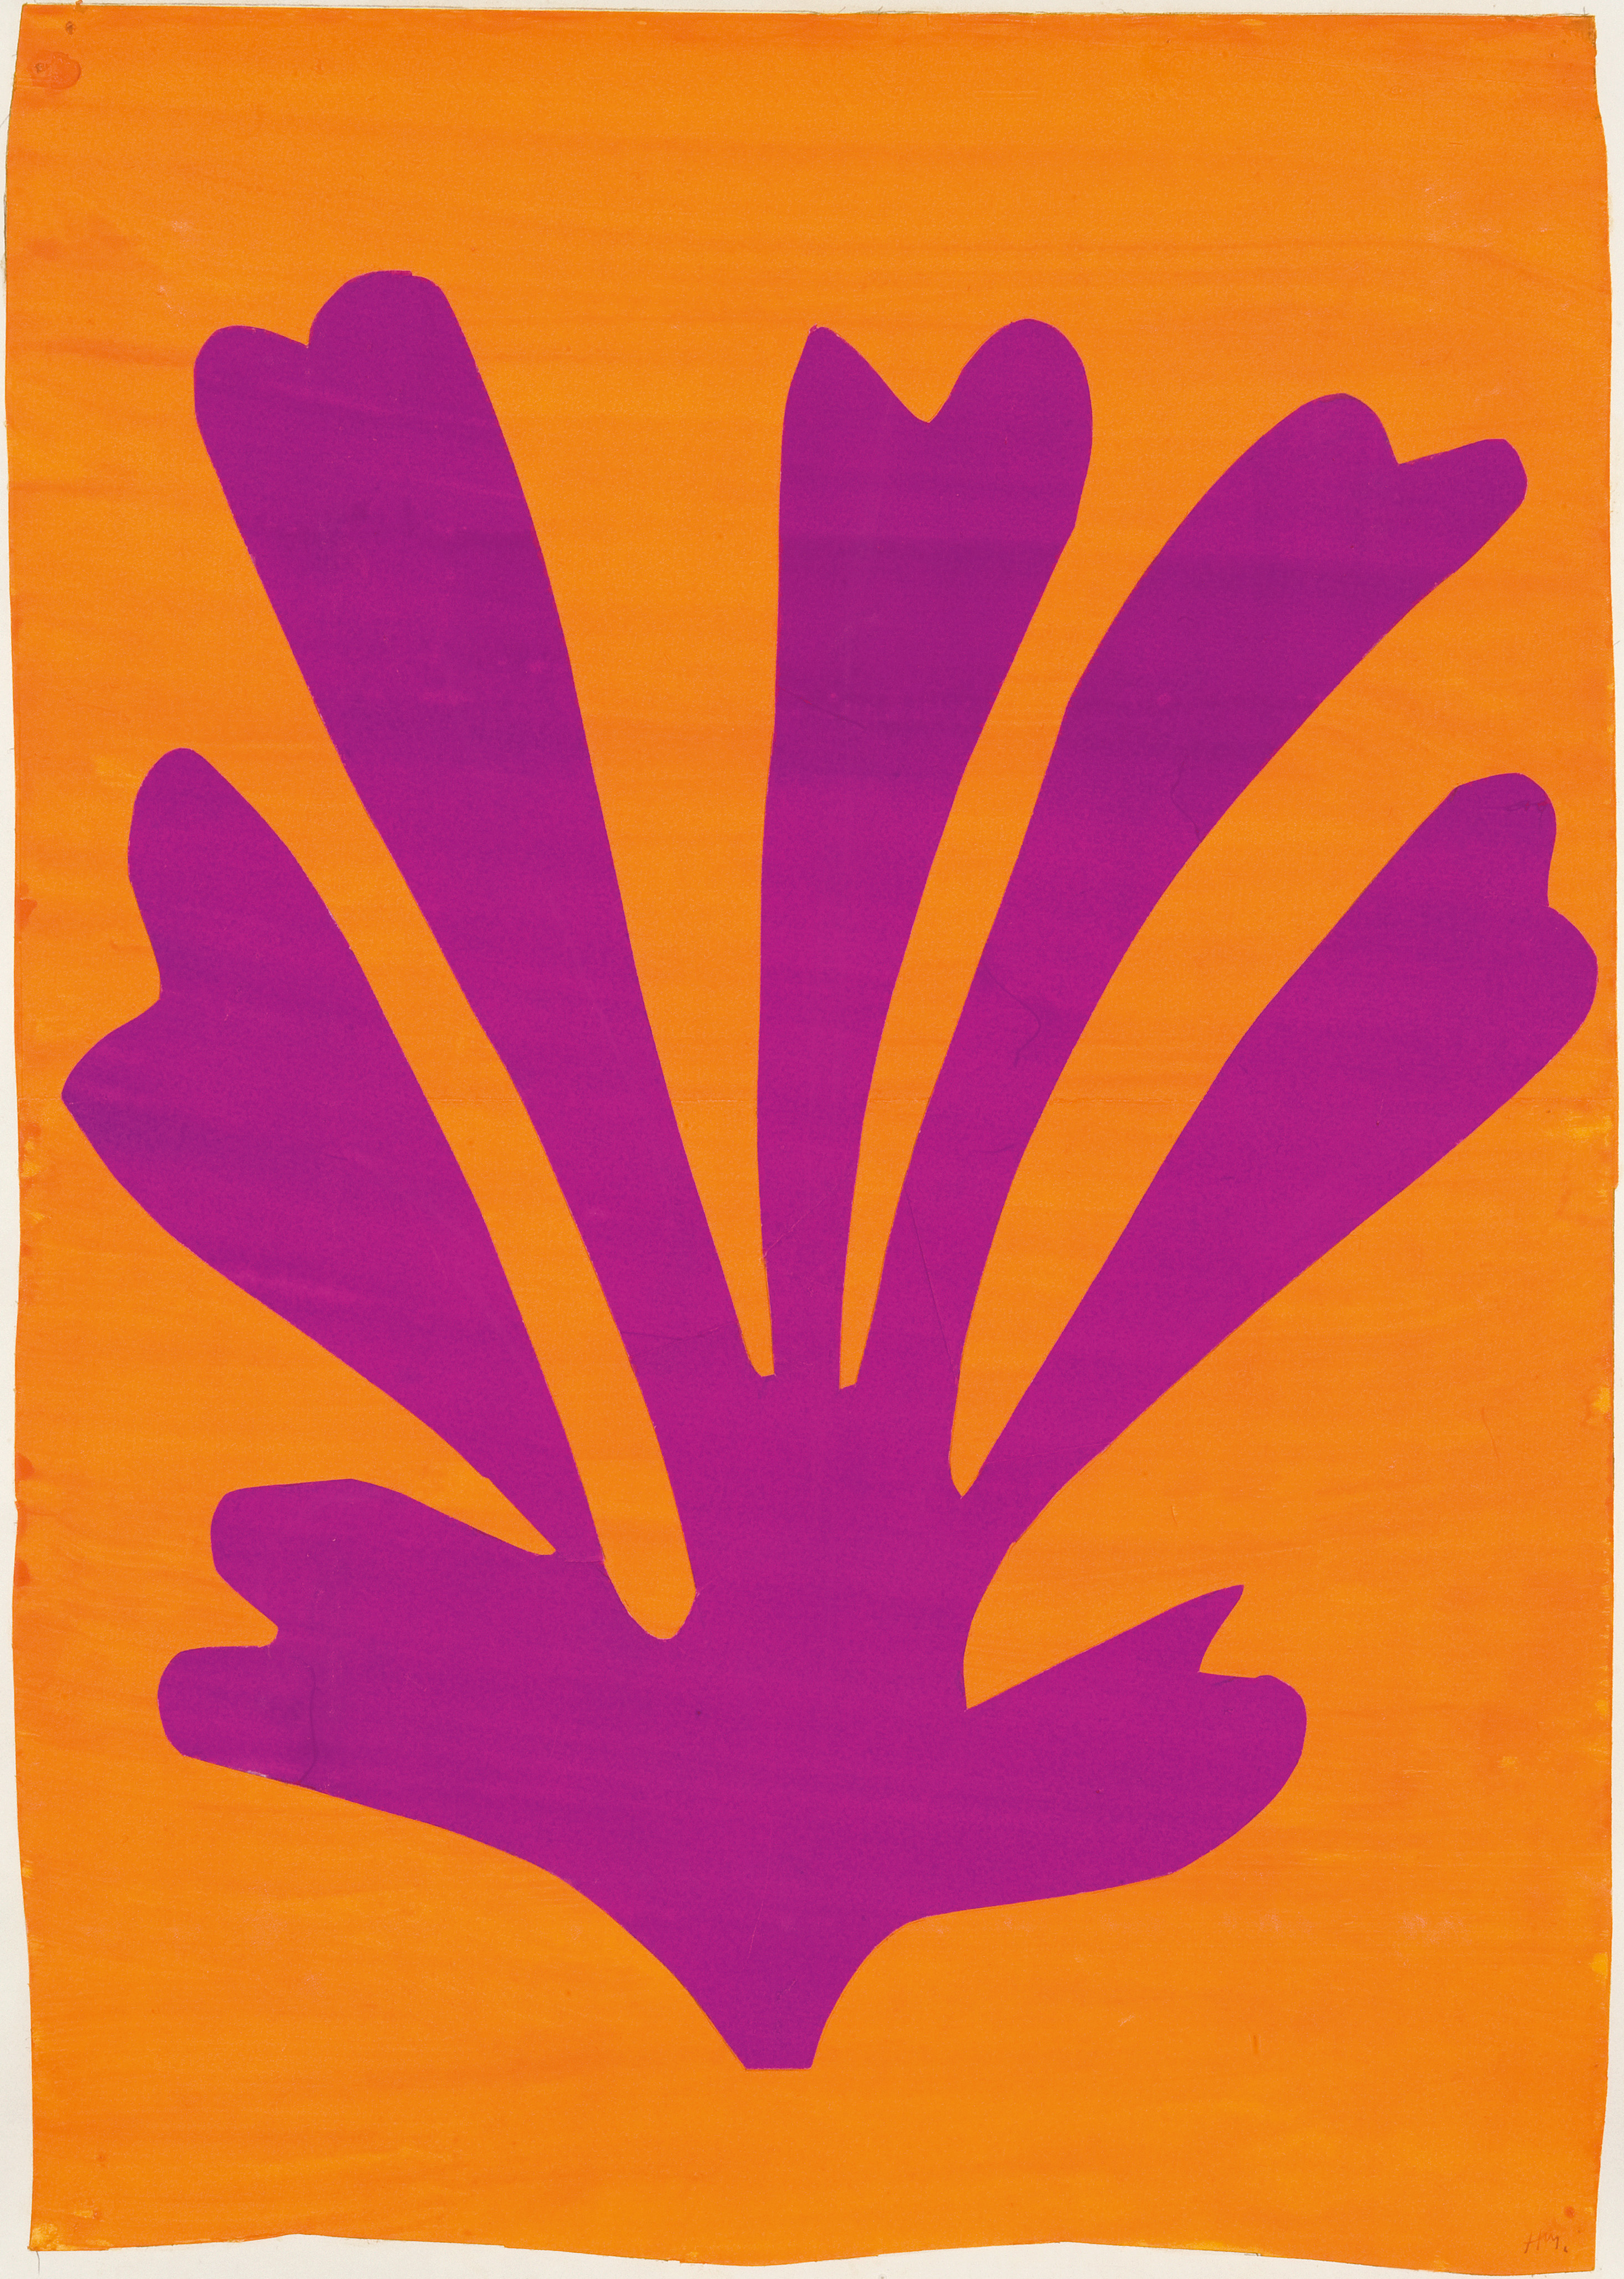 187 New York Henri Matisse The Cut Outs At Moma Through